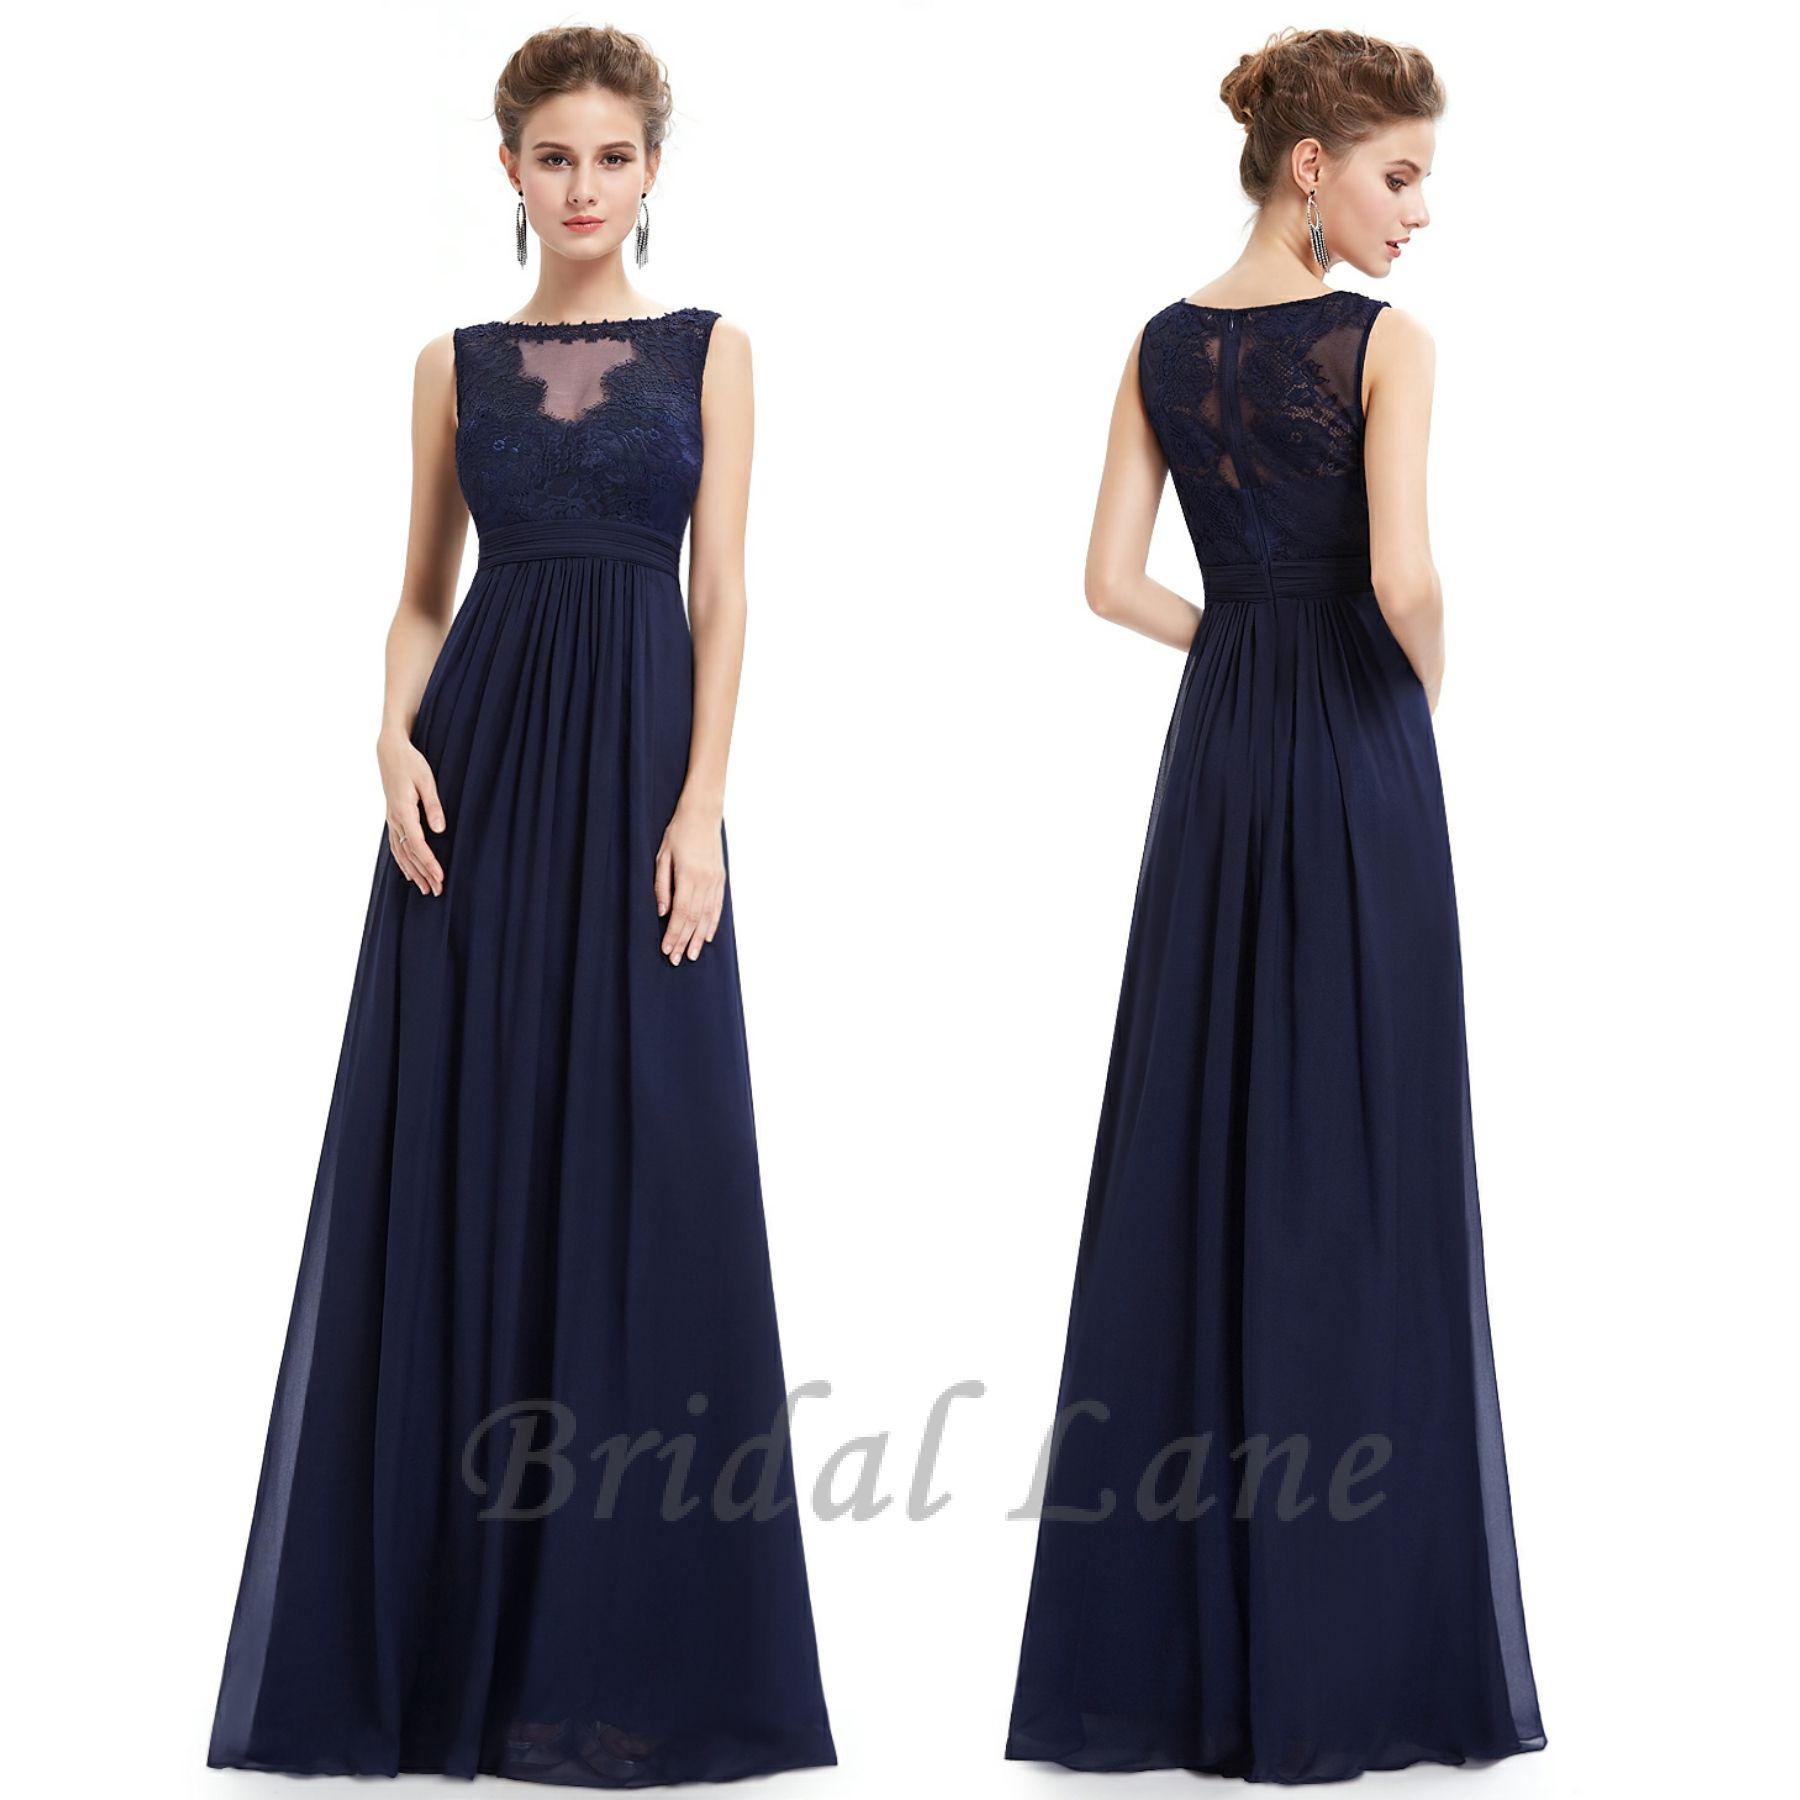 Pin On Evening Dresses Matric Farewell Dresses Matric Dance Dreses Cape Town South Africa